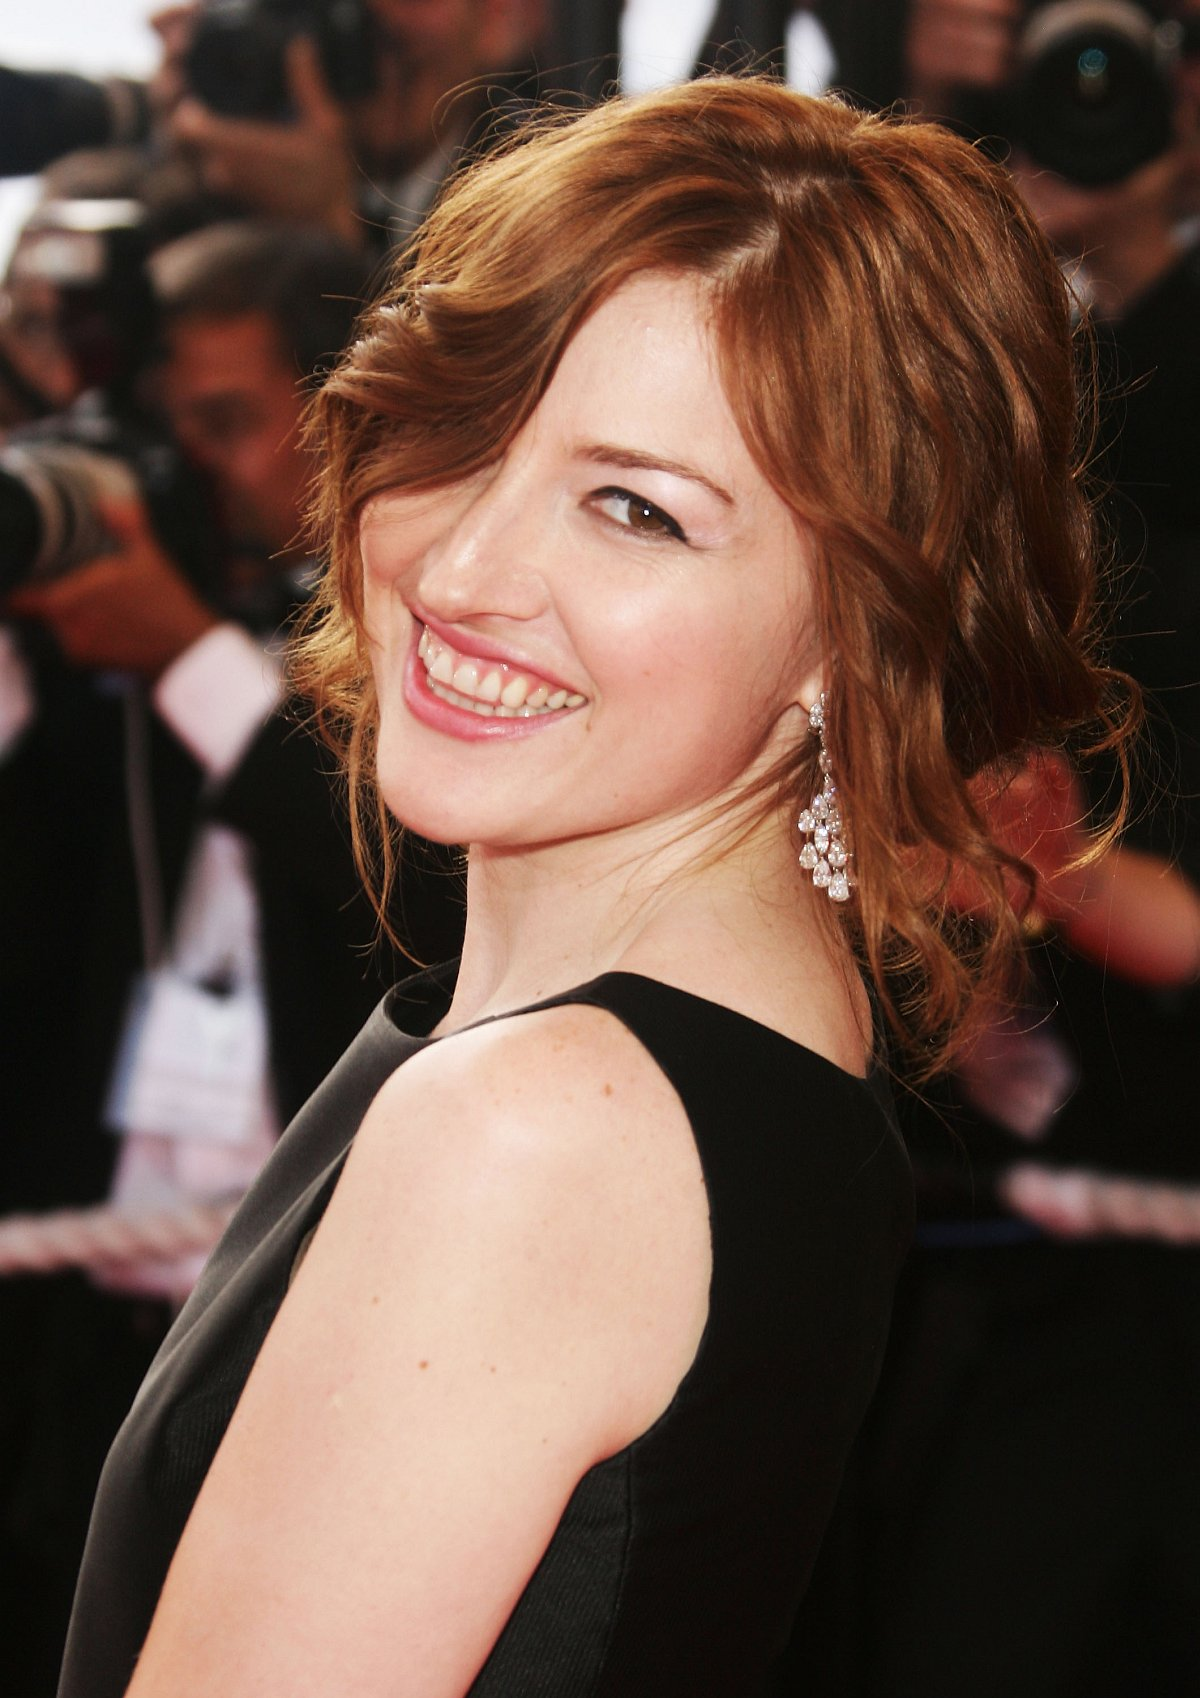 Kelly Macdonald (born 1976)